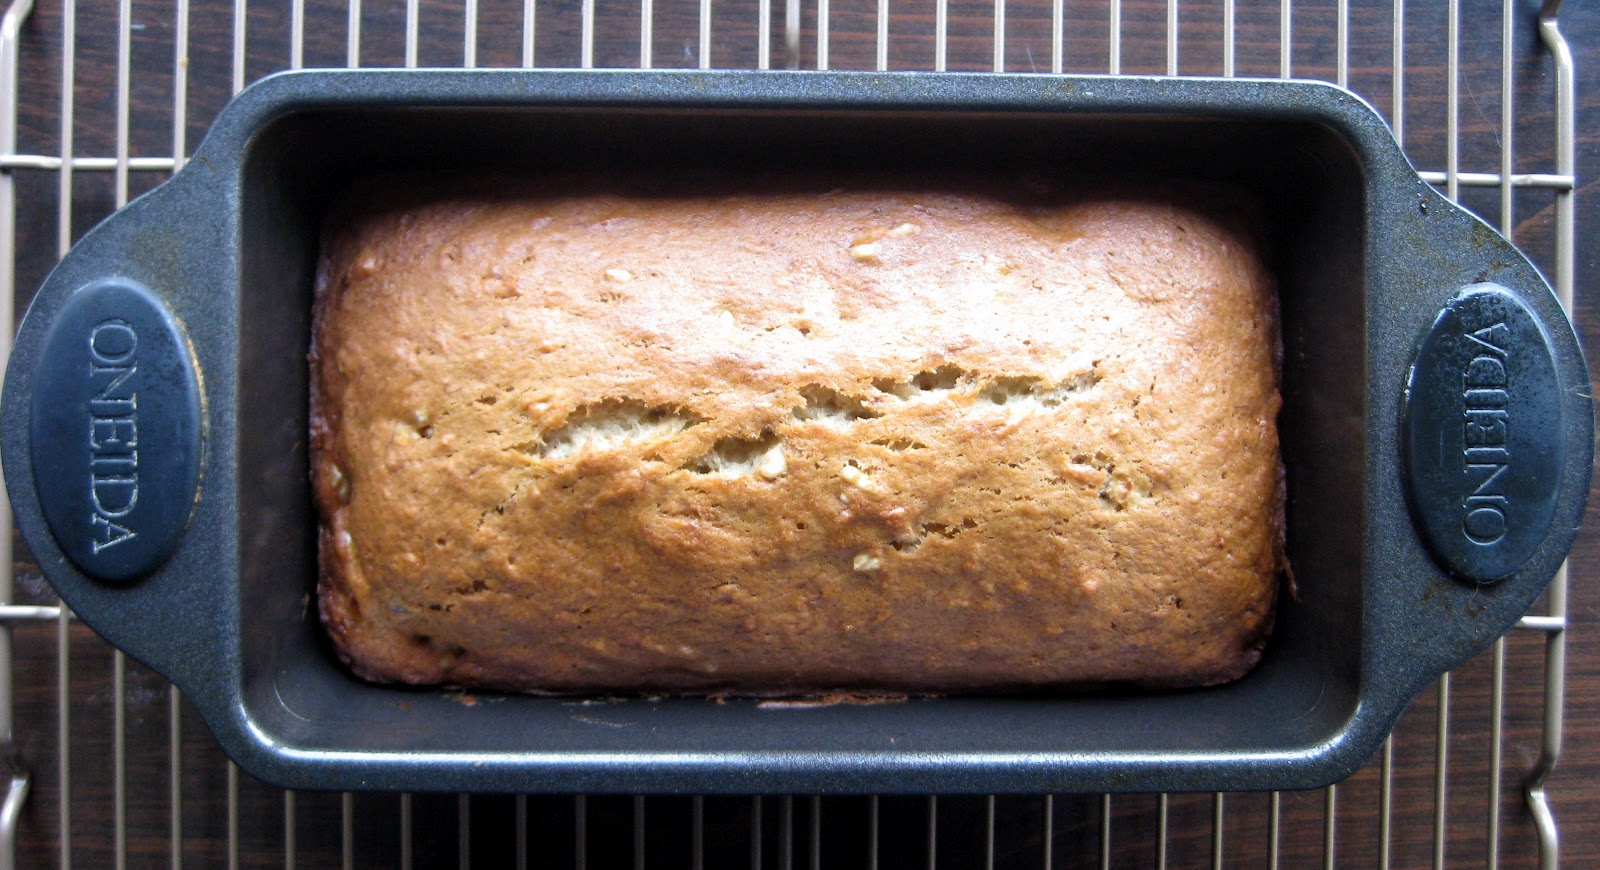 Karis kitchen a vegetarian food blog banana bread everyone needs a favorite banana bread recipe assuming that everyone else sometimes lets bananas get too ripe like we do my favorite recipe comes from forumfinder Choice Image